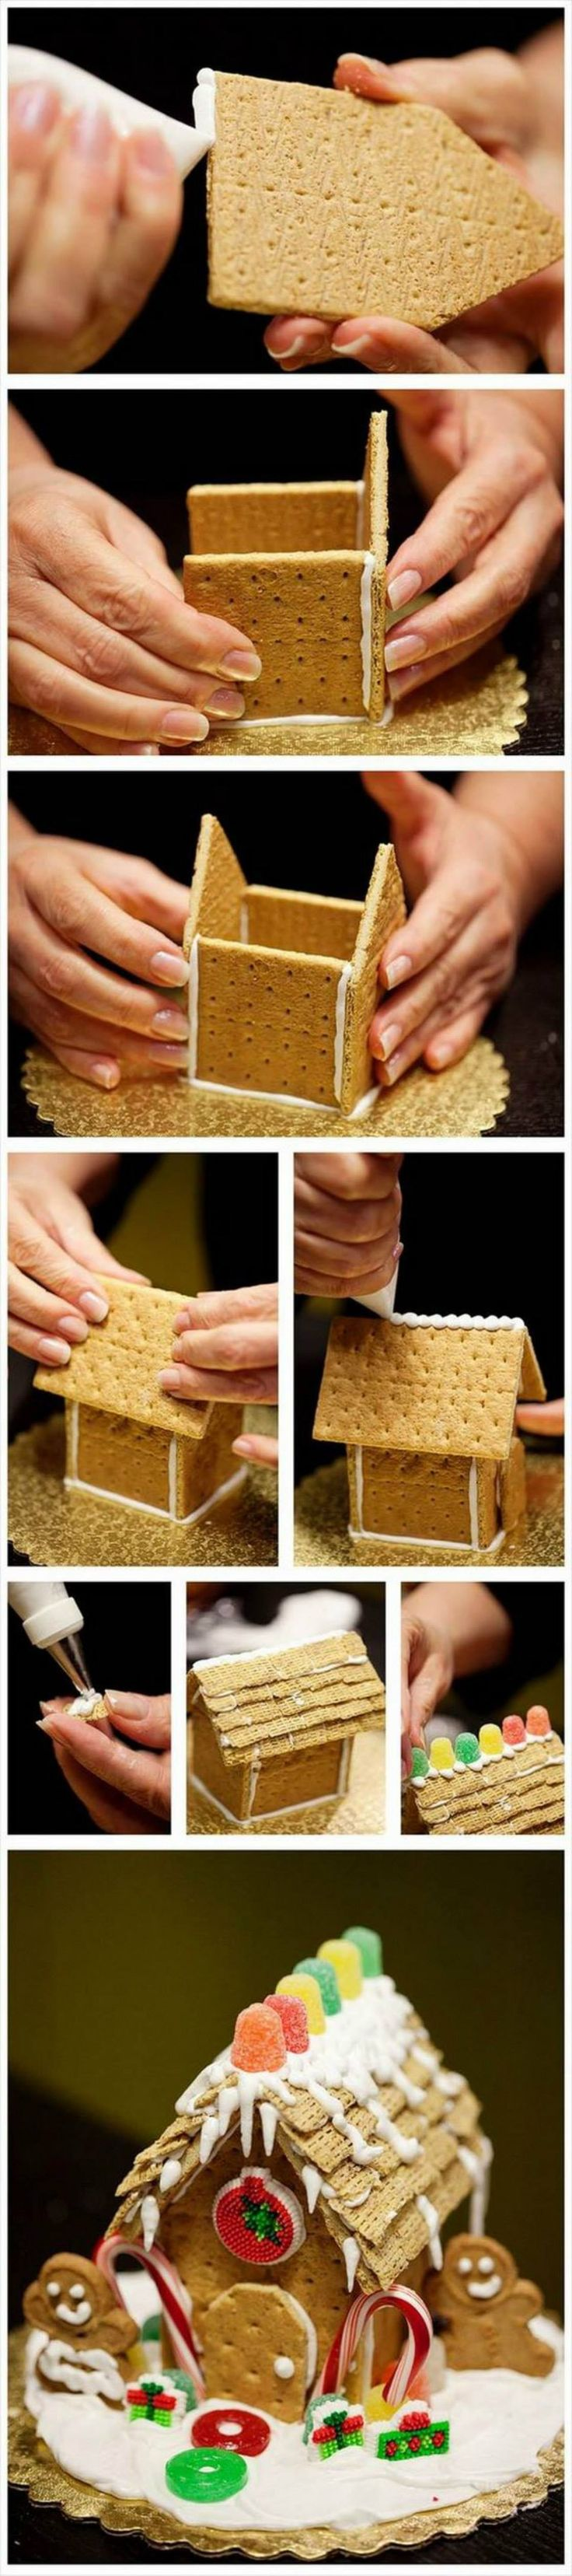 Graham cracker house! Don't make a large gingerbread house if you're family won't eat it! Reduce holiday food waste. #homemade #Christmas #food #recipe #dessert #treat